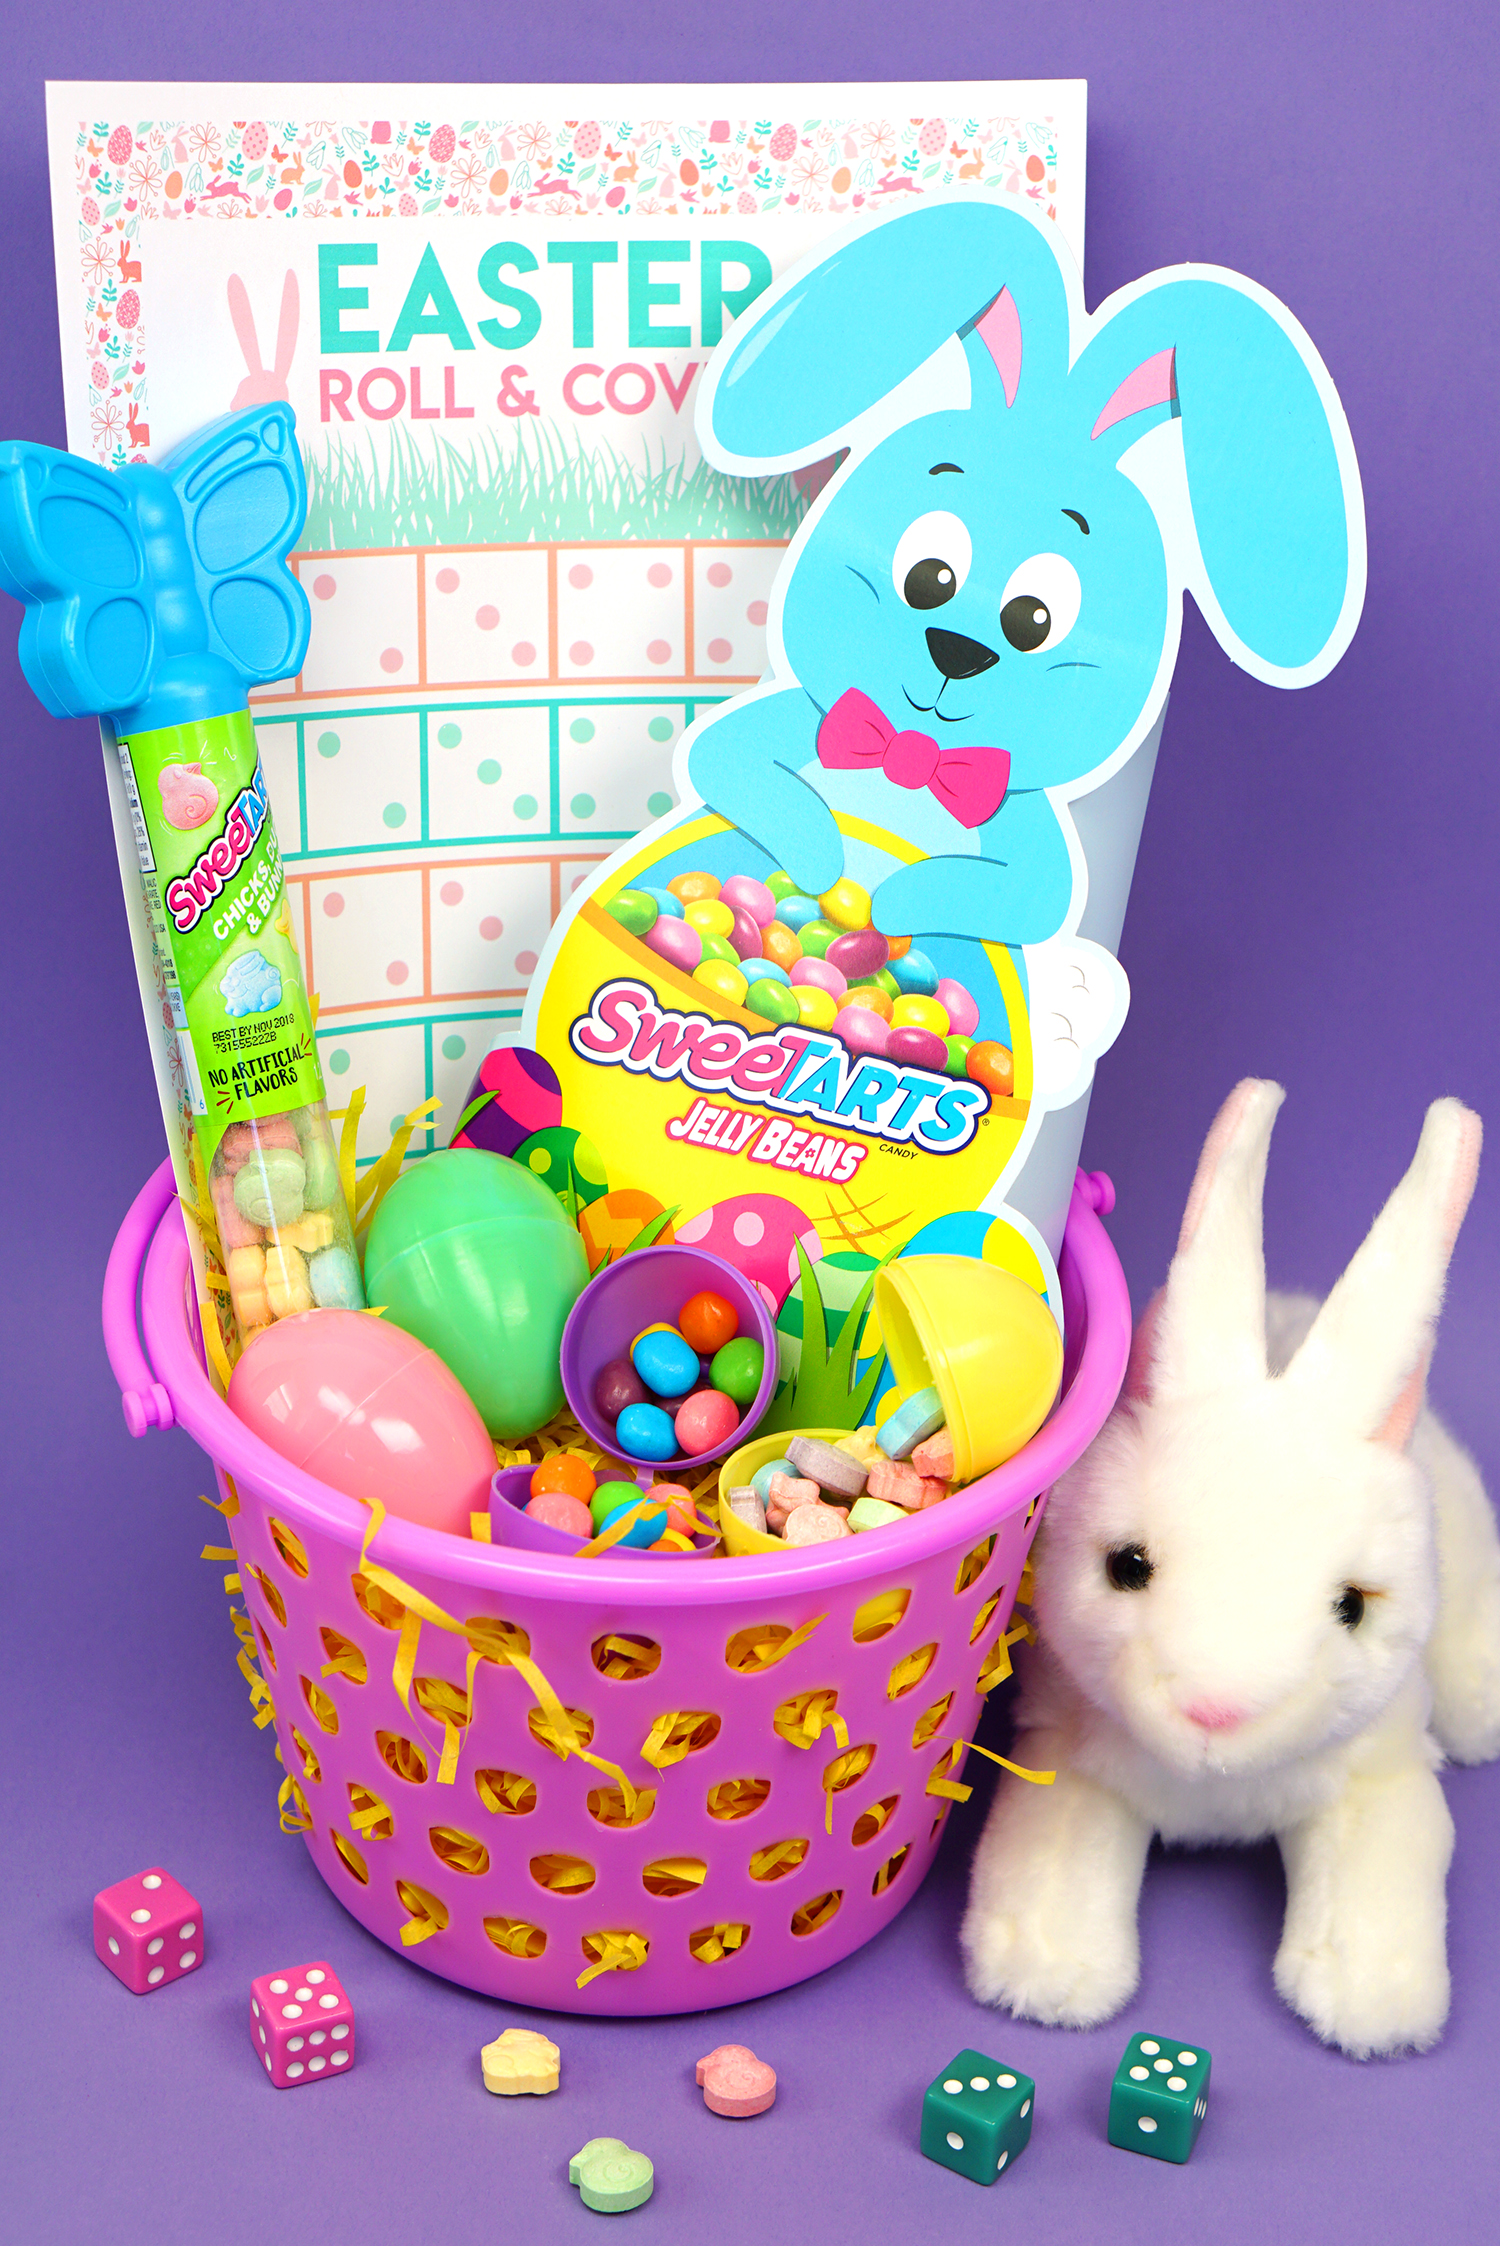 Roll cover easter game sweetarts easter basket happiness is box sweetarts chicks ducks and bunnies topper a pair of dice and a few easter eggs inside of your basket for an easter surprise that is sure to be negle Choice Image